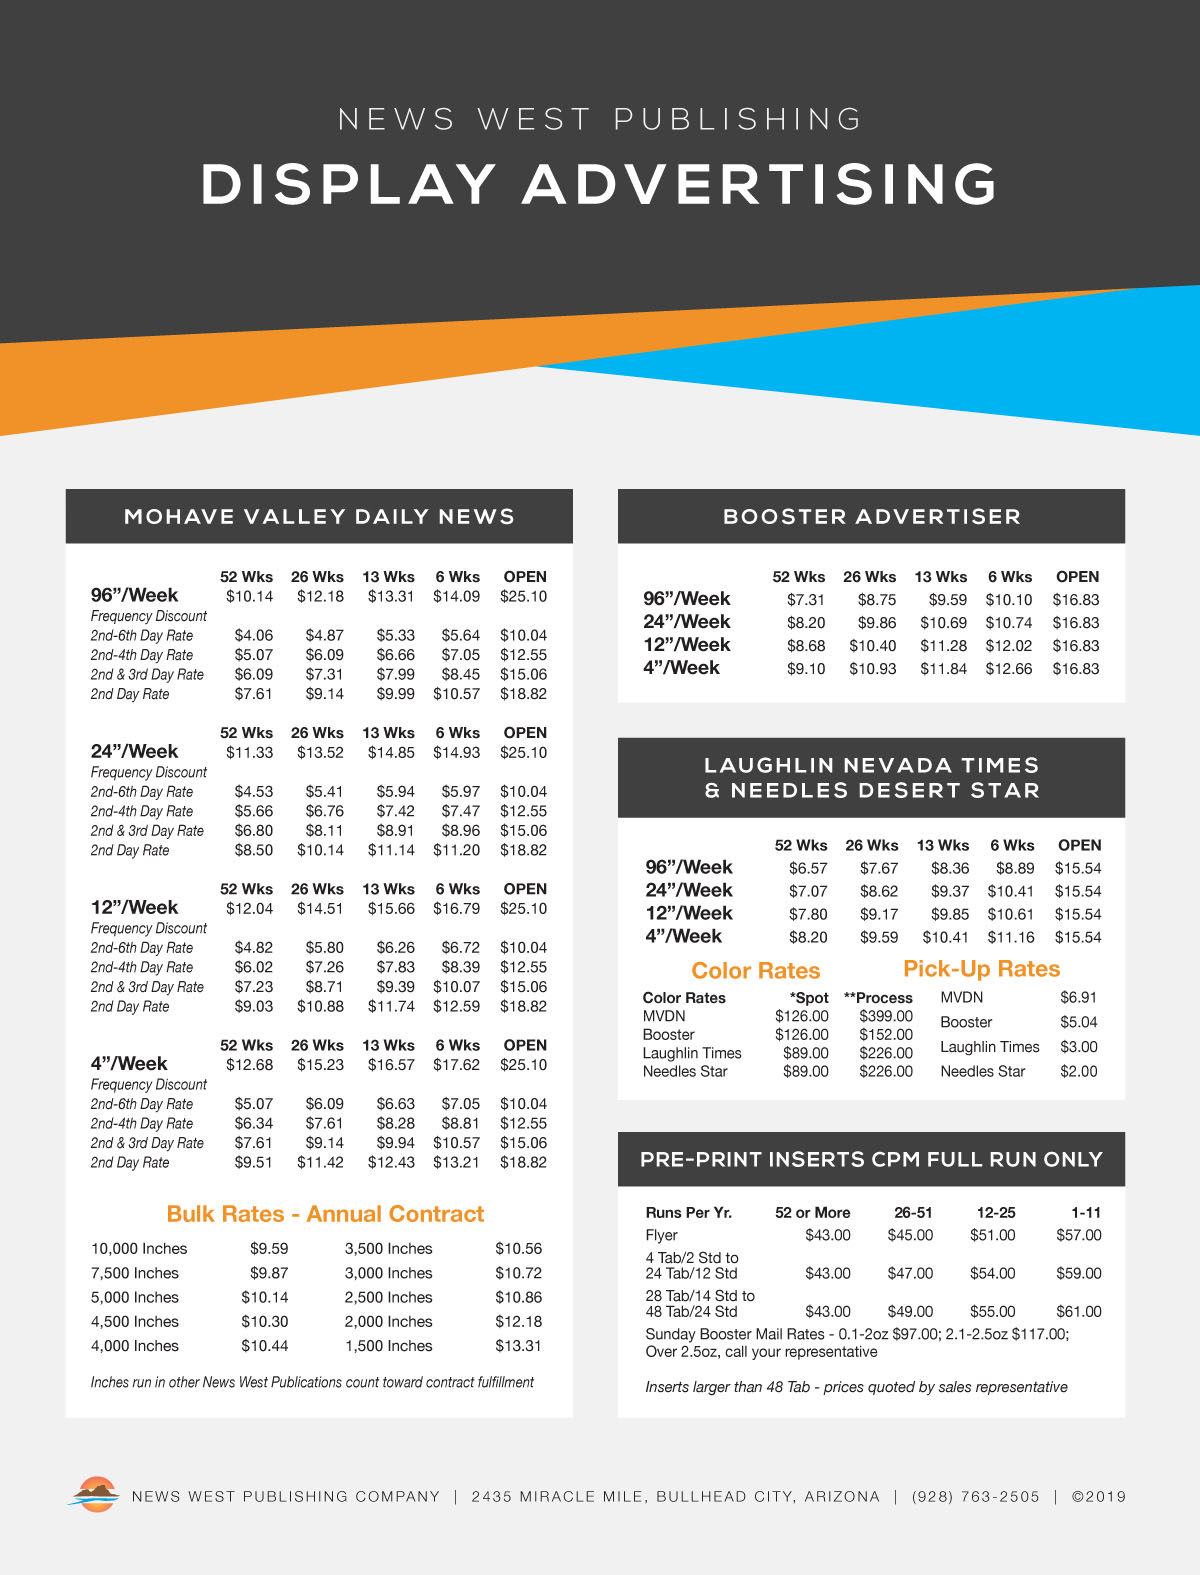 08 - Display Advertising Rates 2019